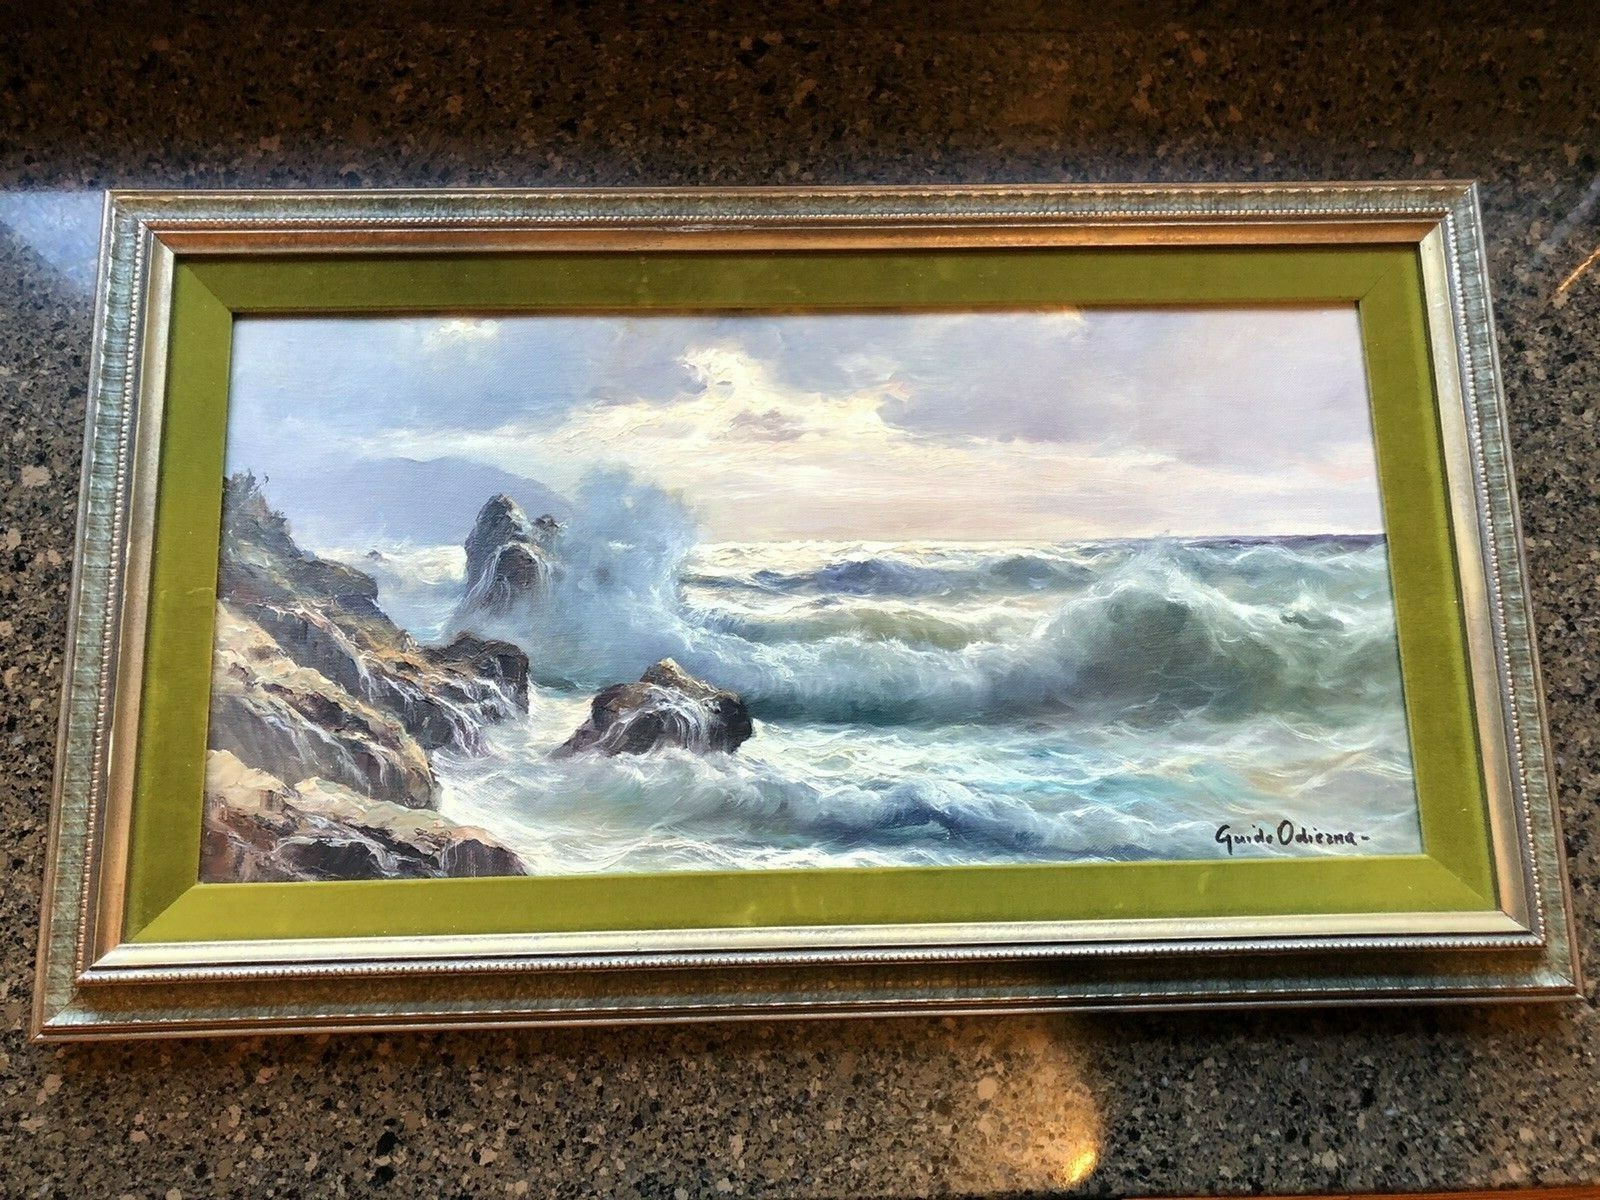 Signed Original Guido Odierna Oil Painting Of Crashing Waves framed And Matted  - $749.99